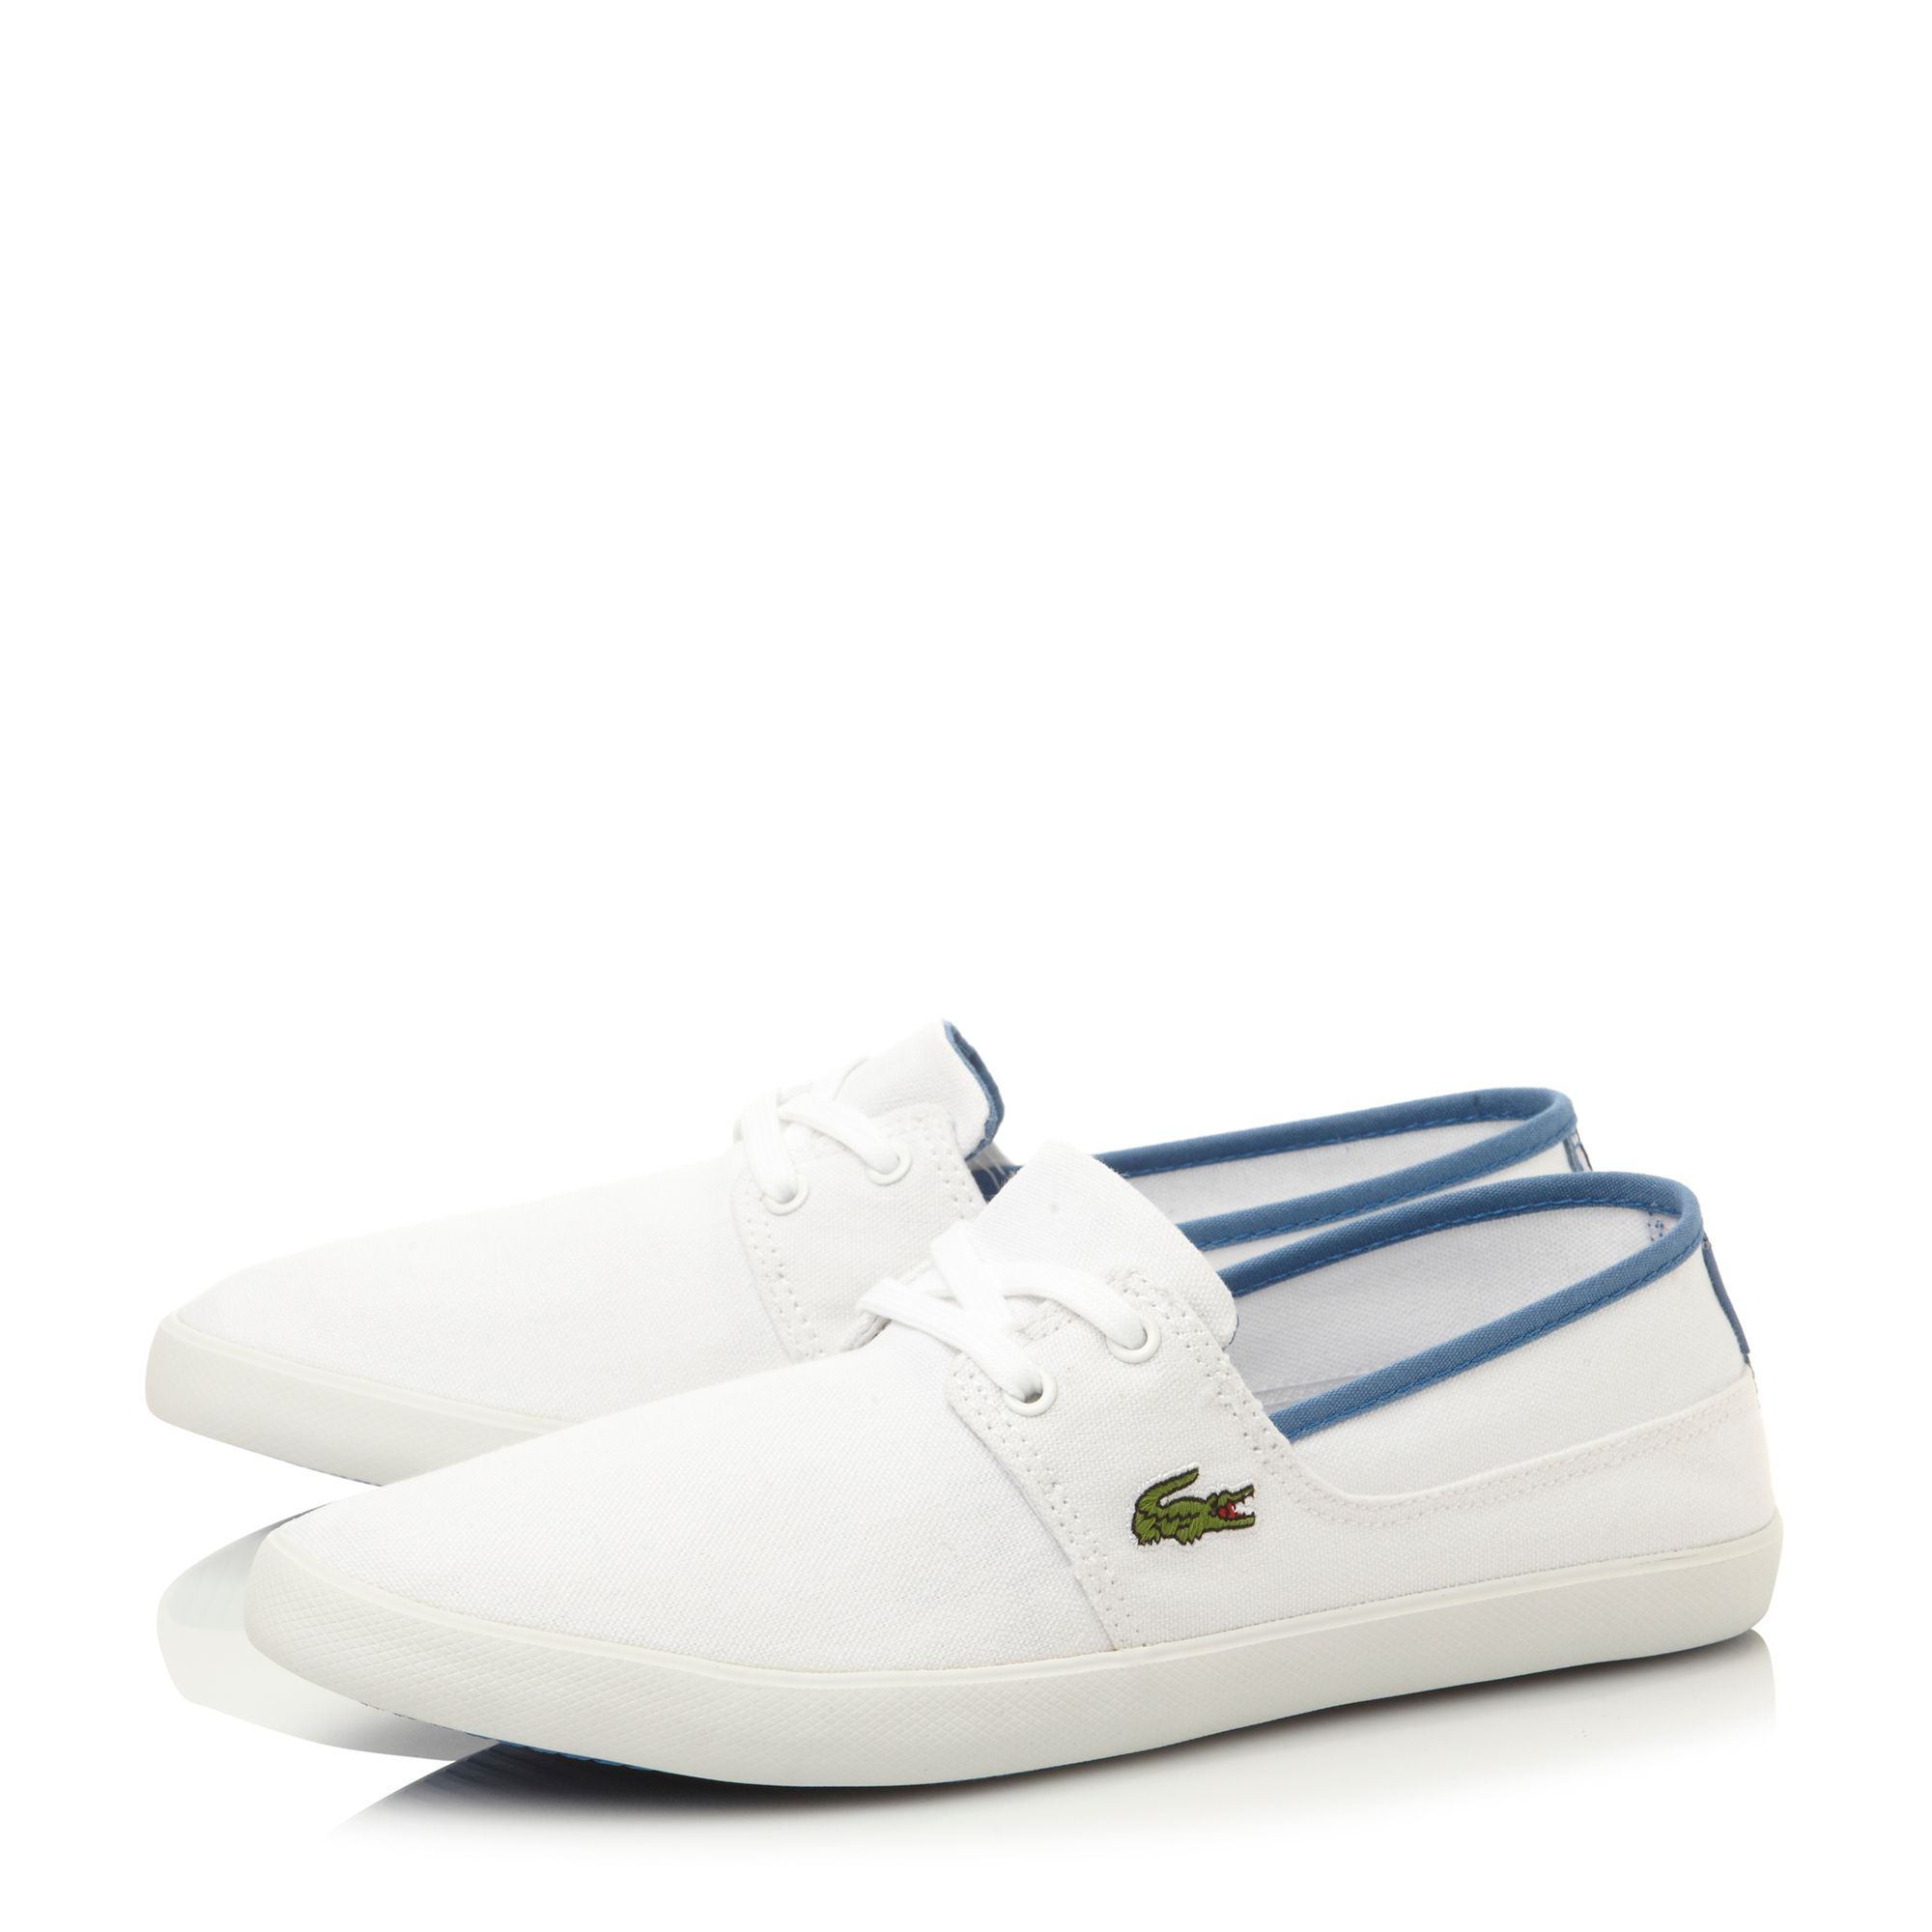 lacoste marice lace up boat style shoes in white for